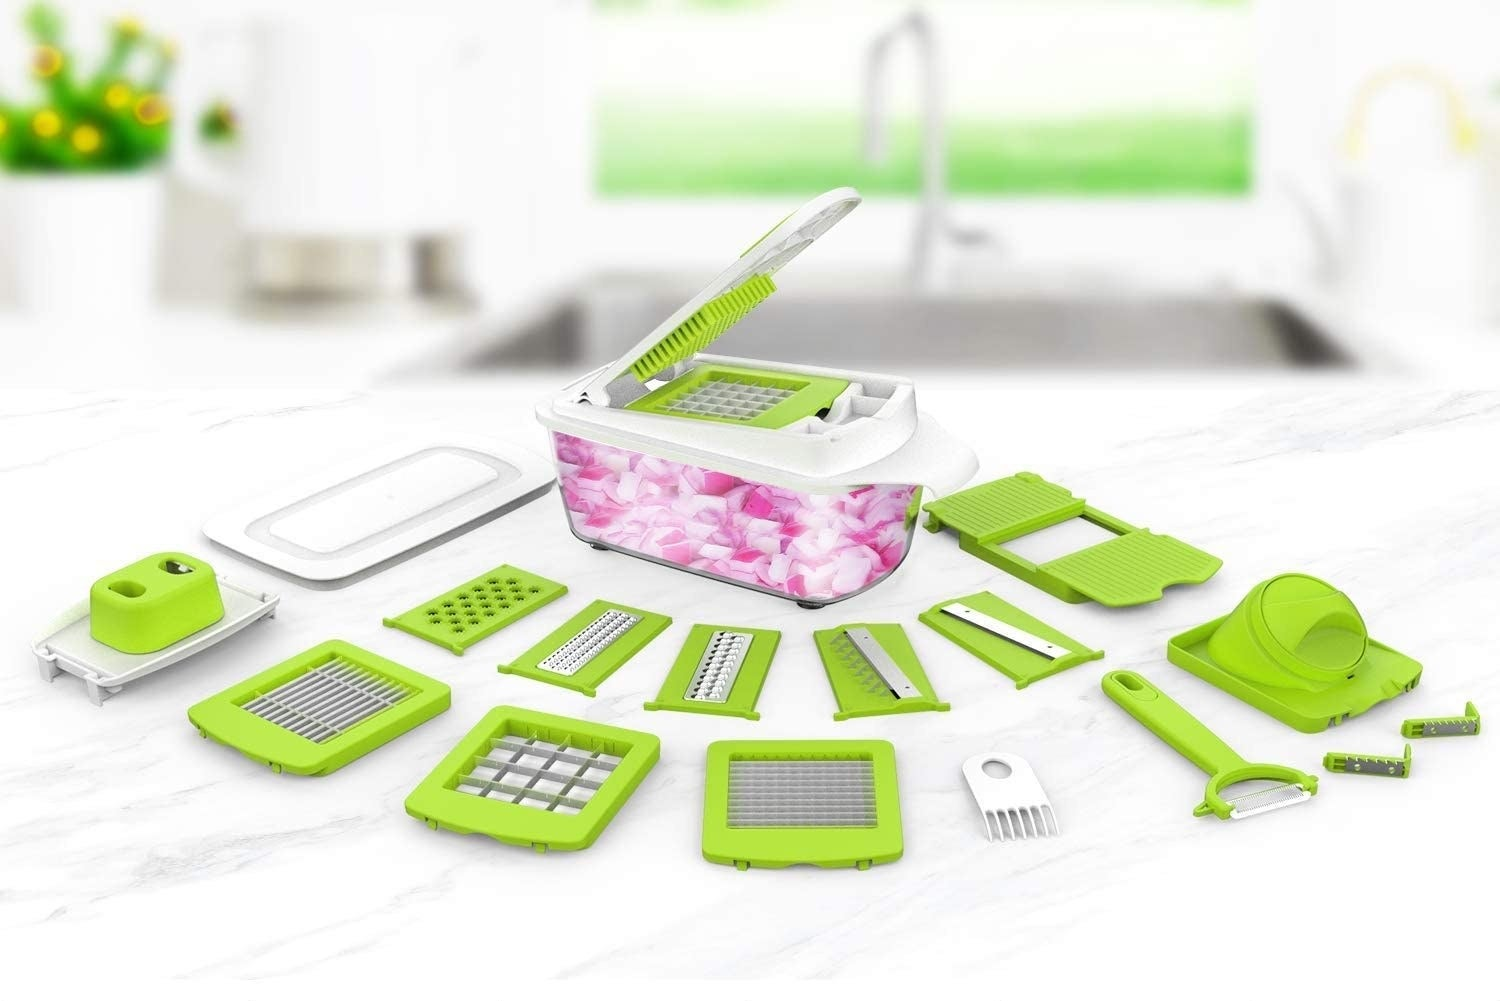 food chopper with all the attachments around it